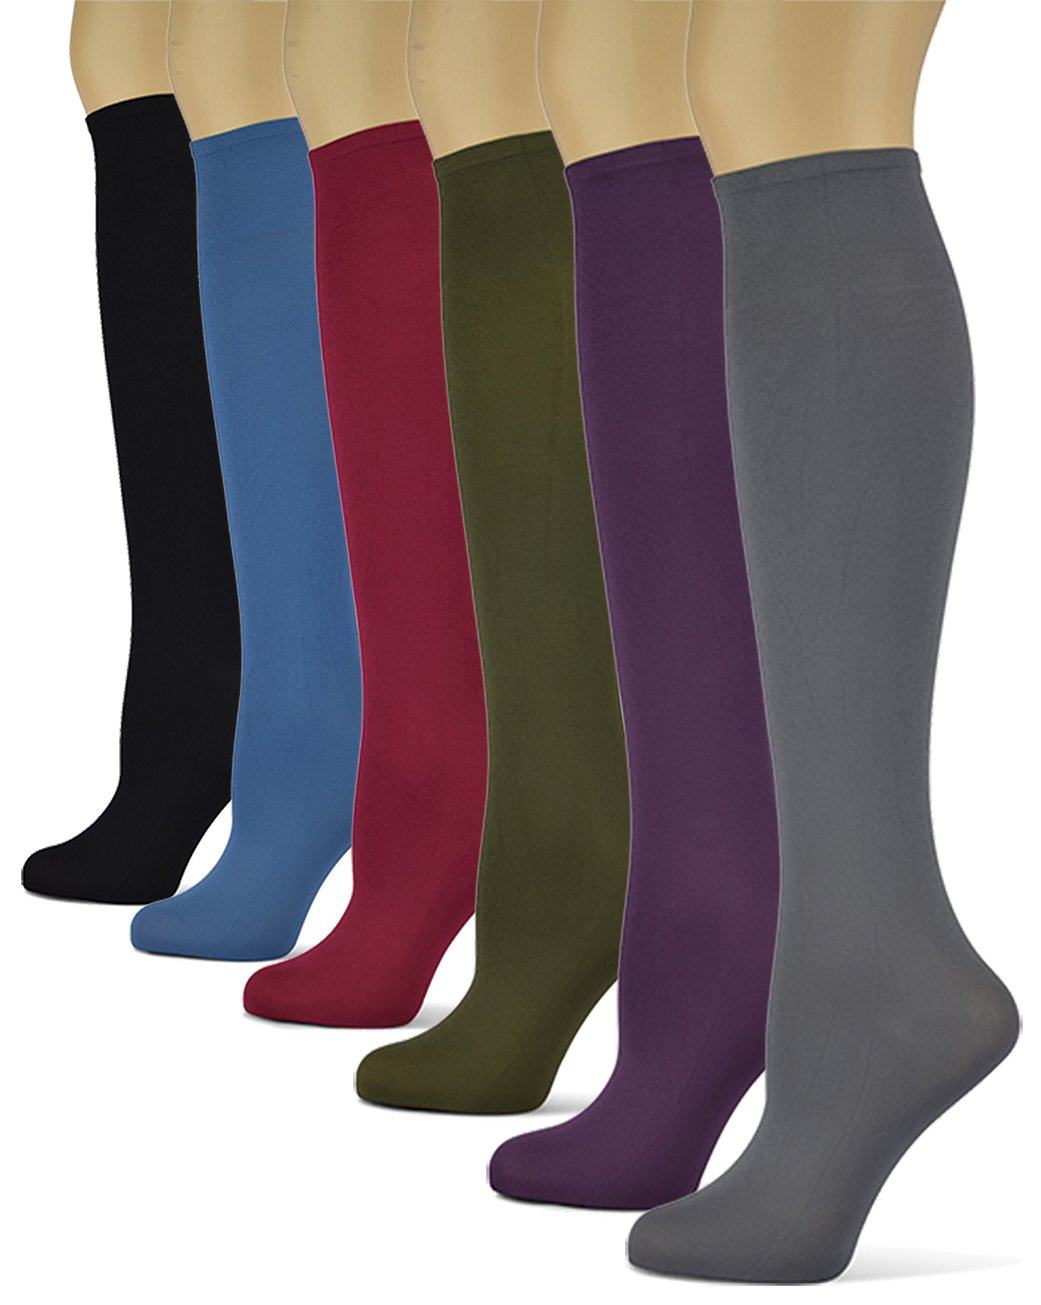 Silky Smooth Knee High Trouser Socks by Sox Trot | Thin Material | Made in USA (Solid Jewels) 6 Pack by Soxtrot